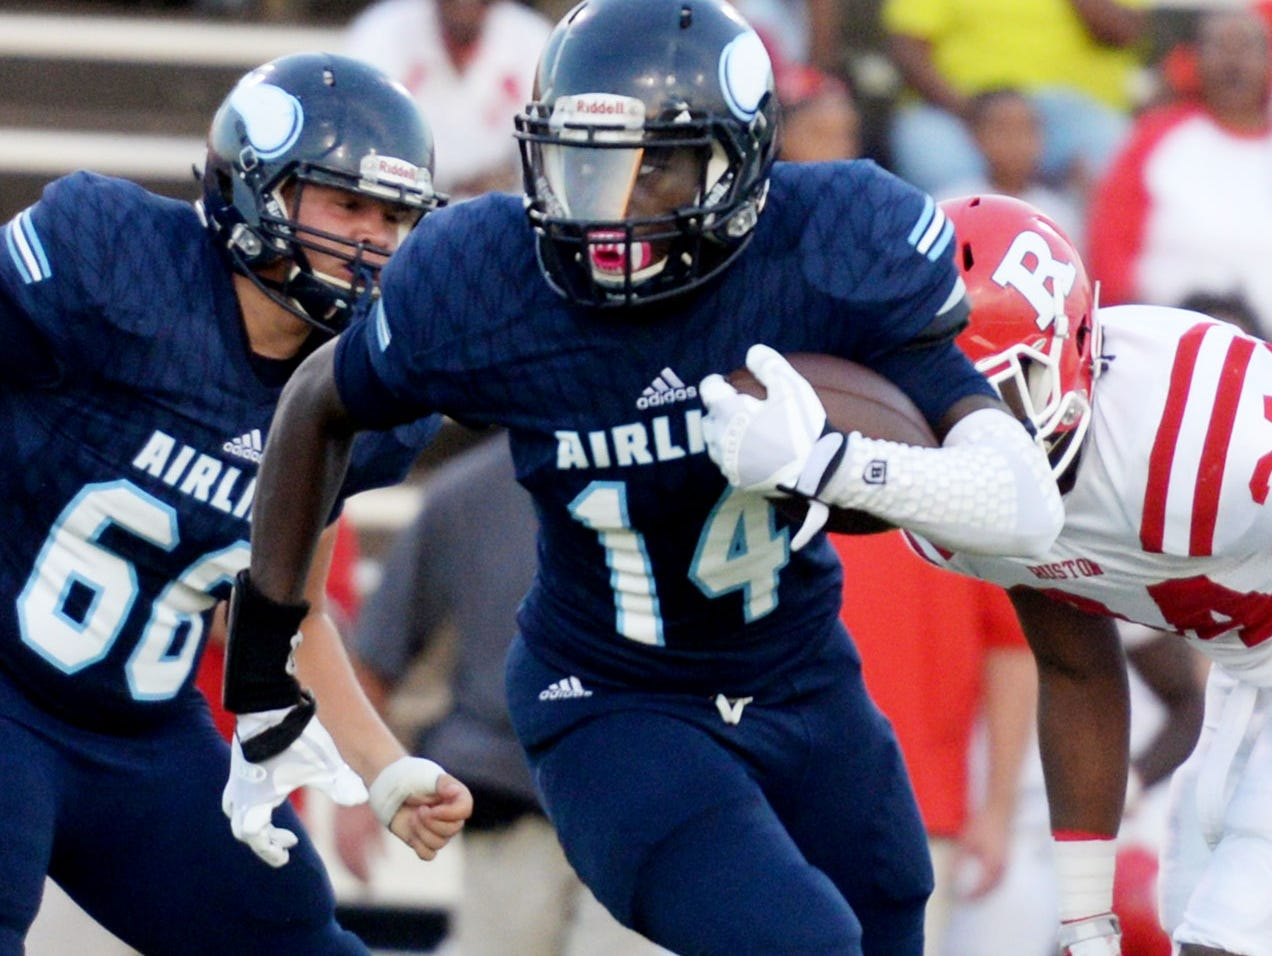 Airline's Coby Mcgee during their game against Ruston Friday evening at Airline High School.